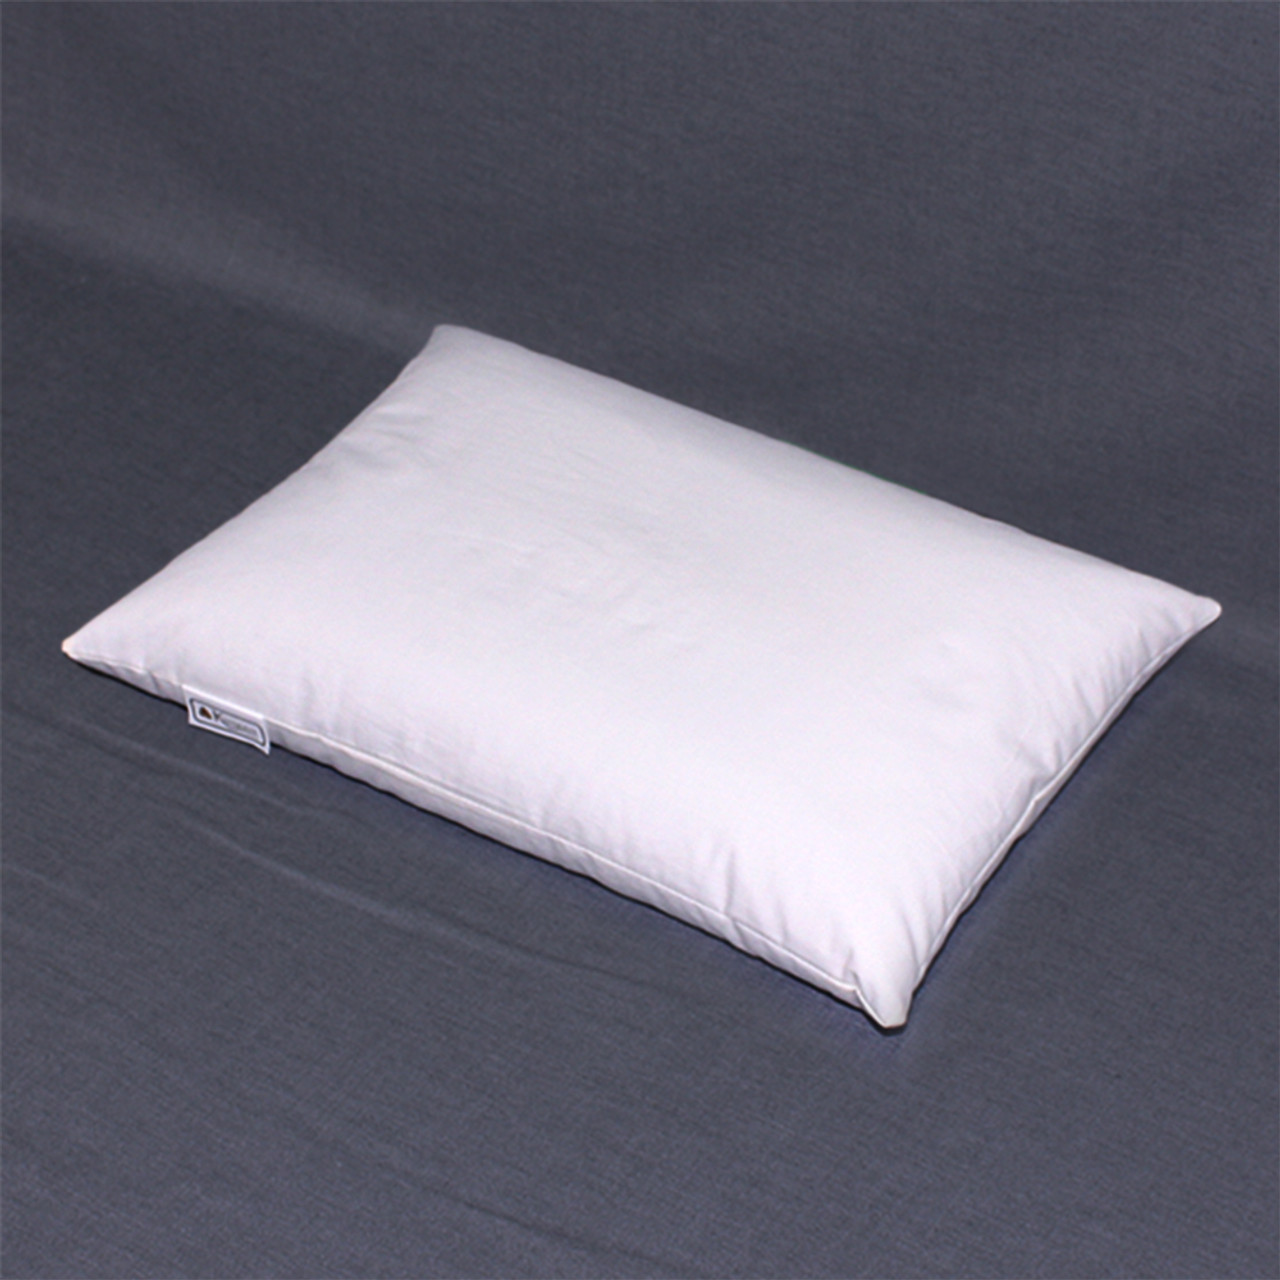 11 x 16 extra small travel child s pillow